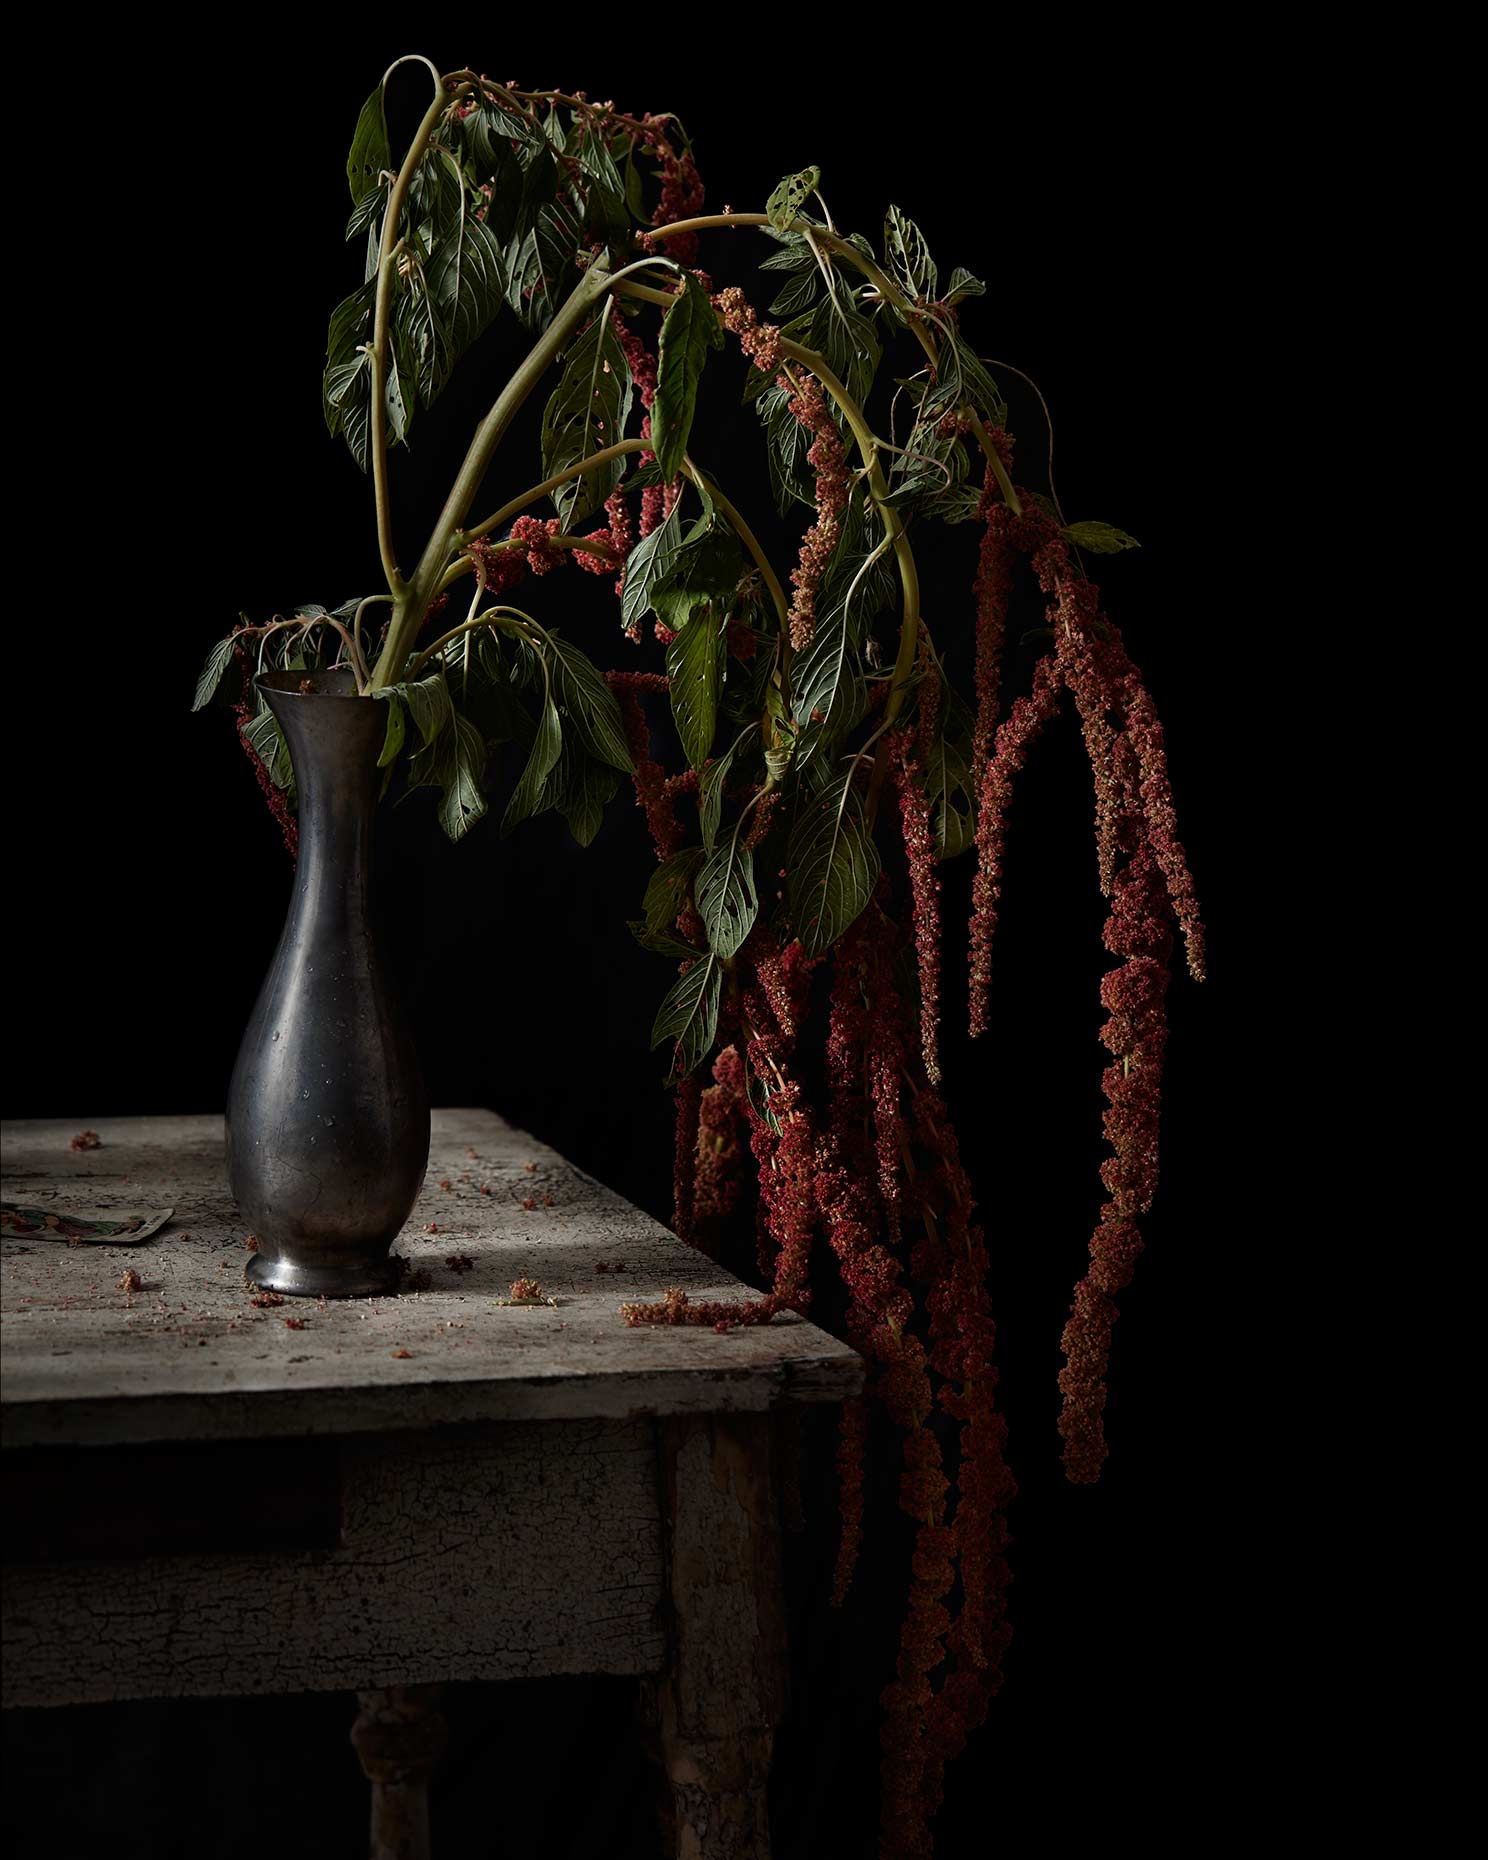 Dark moody red floral still life photograph